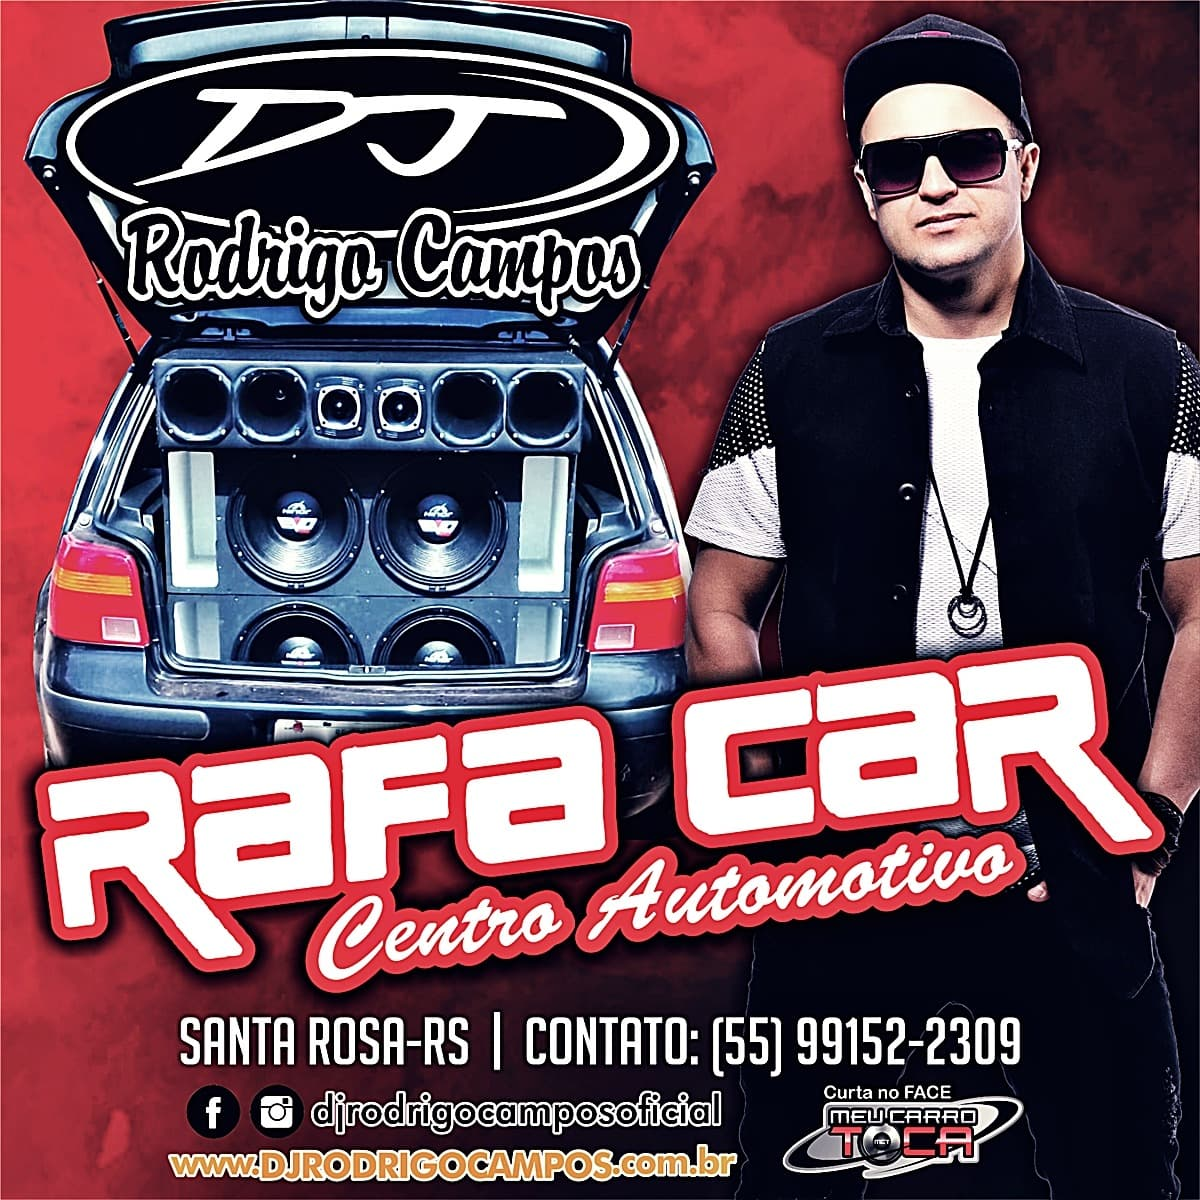 Rafa Car Centro Automotivo Esp. de Sertanejo